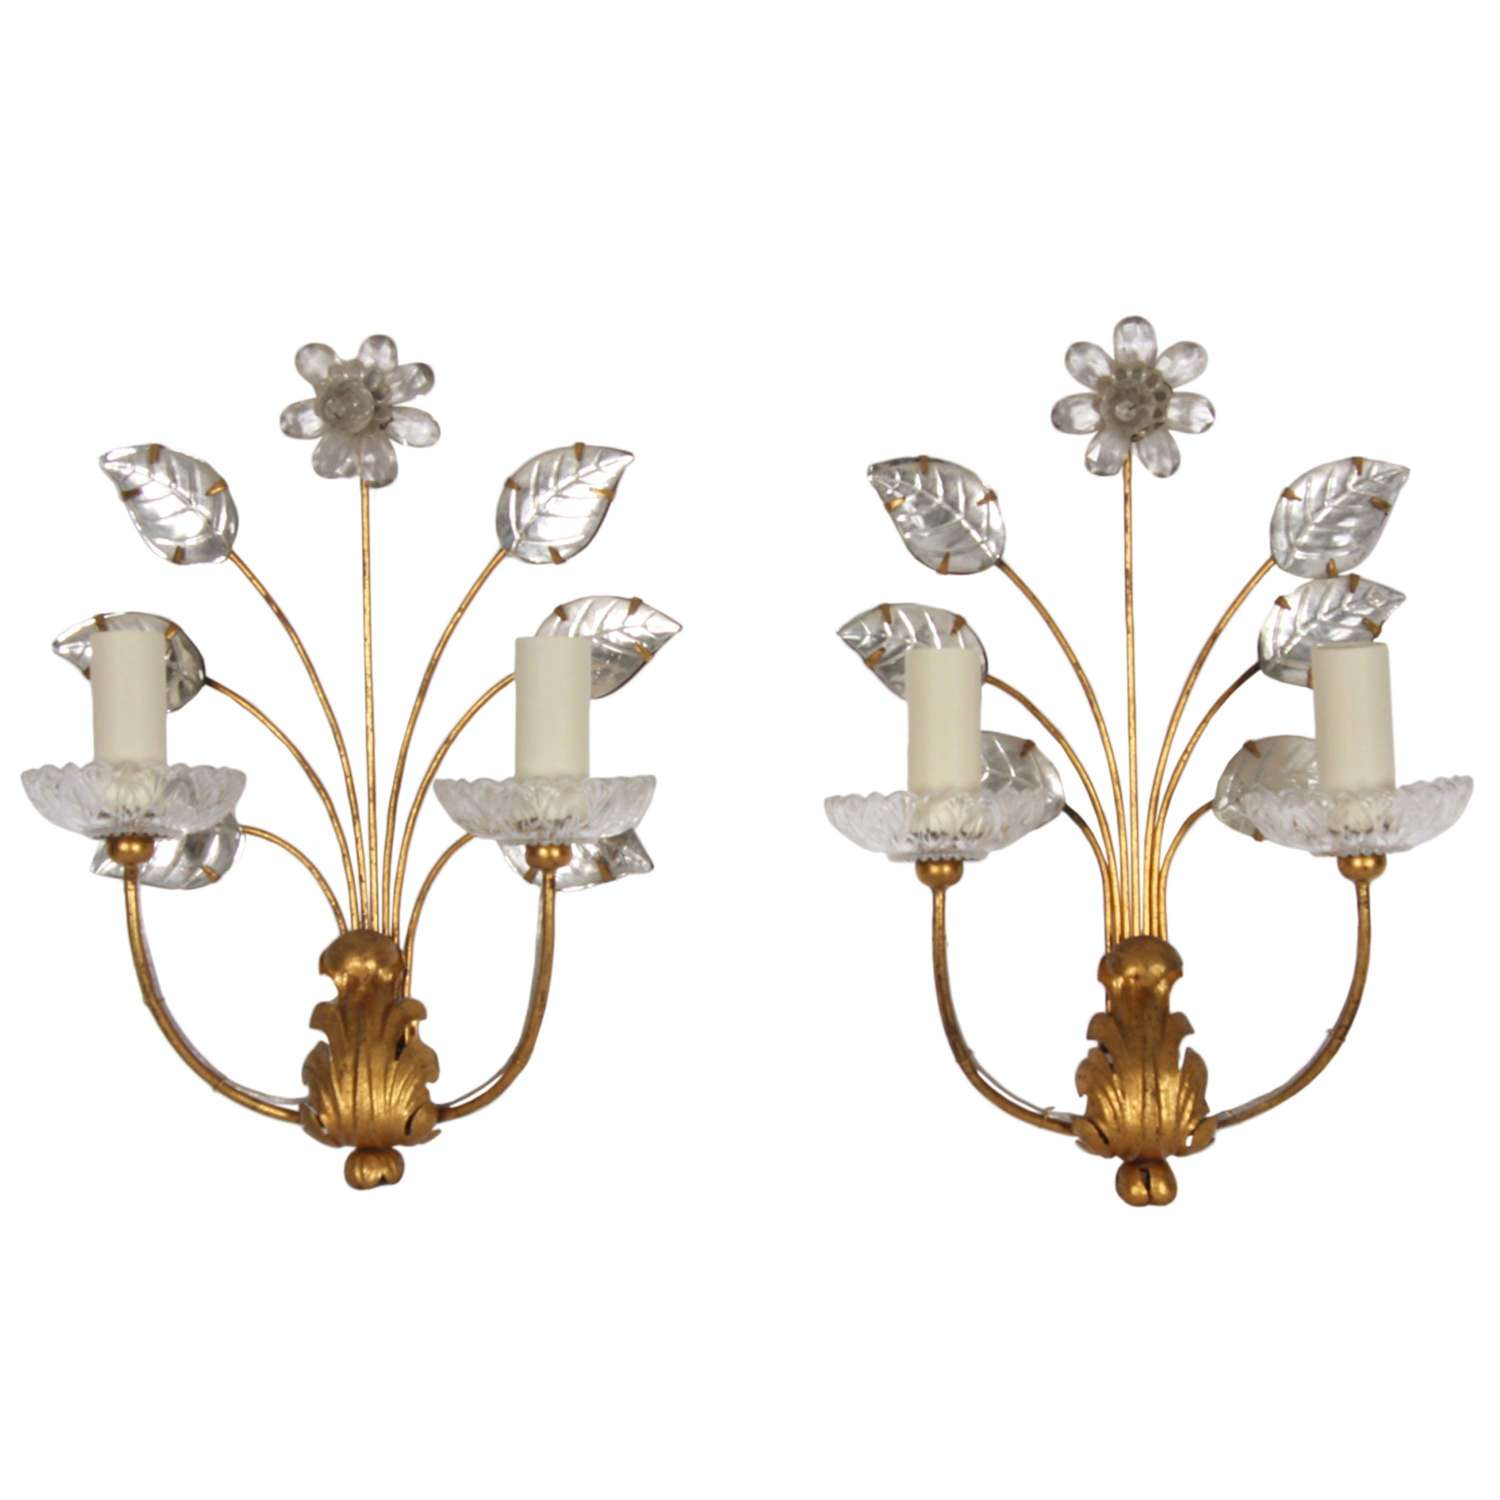 Maison Baguès Pair of Wall Sconces With Flowers